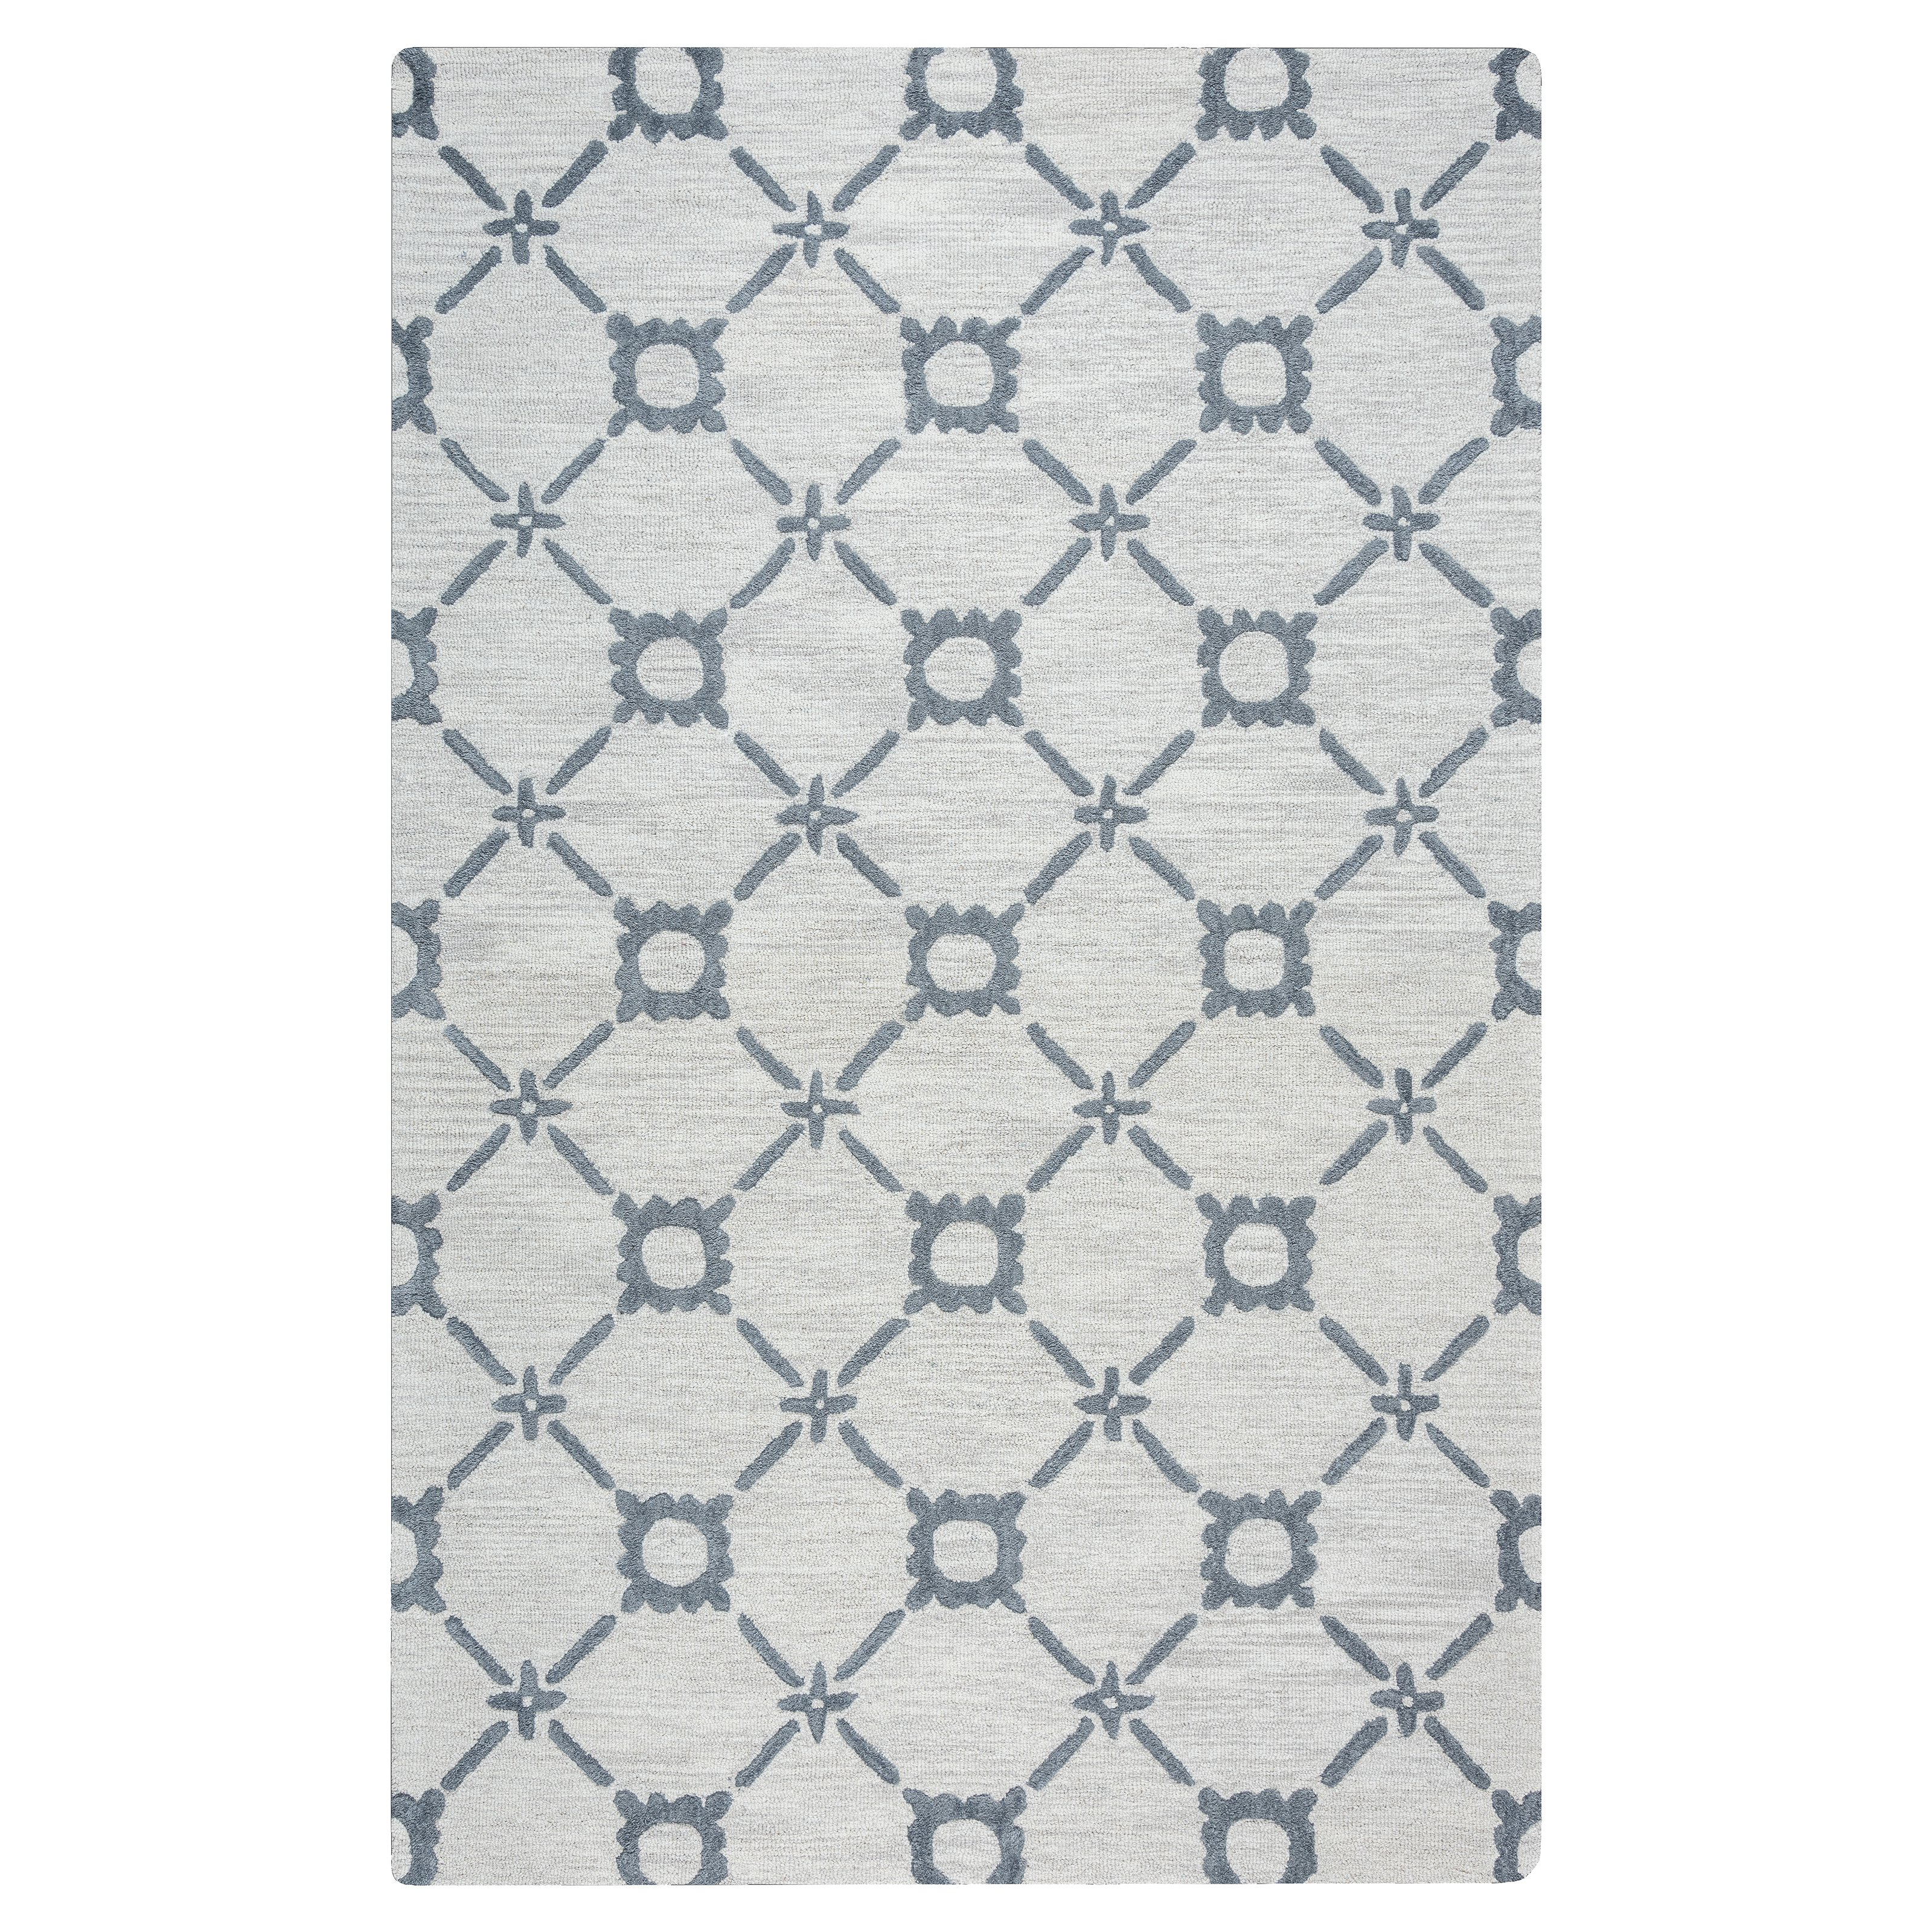 Rizzy Home Lunicca Hand-Tufted Gray Area Rug